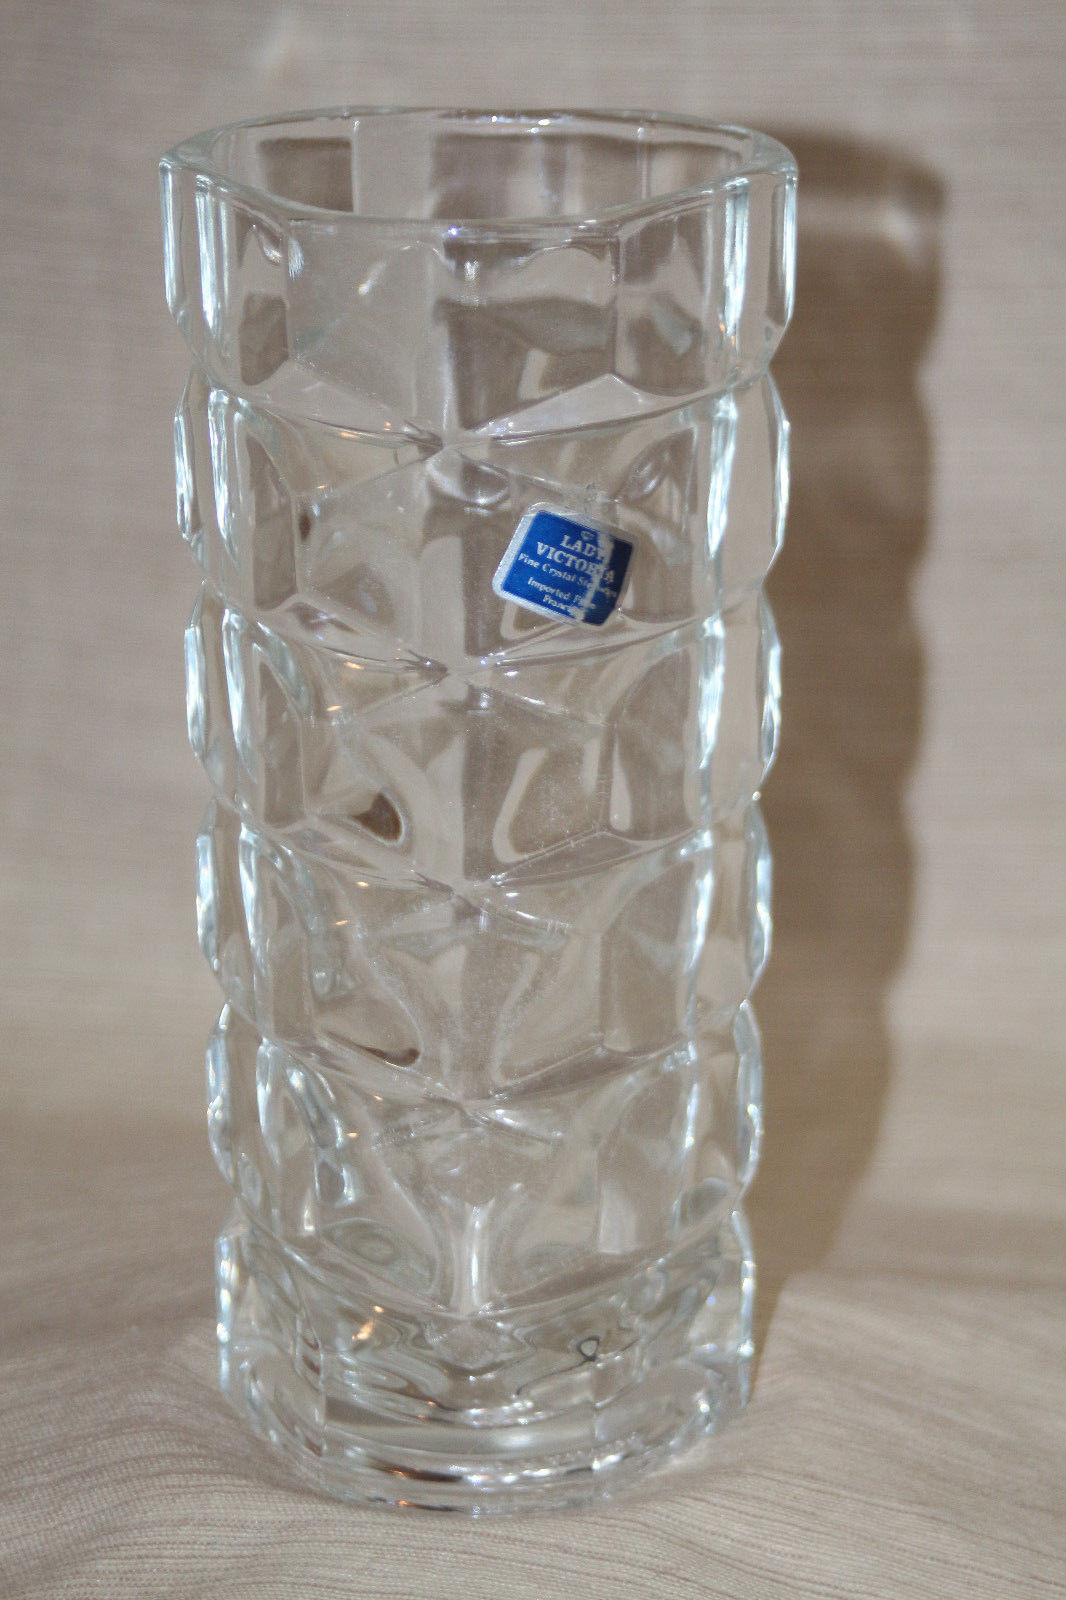 Rosenthal Vase Ebay Of Lady Victoria Crystal Glass Flower Bud Vase Ebay within norton Secured Powered by Verisign